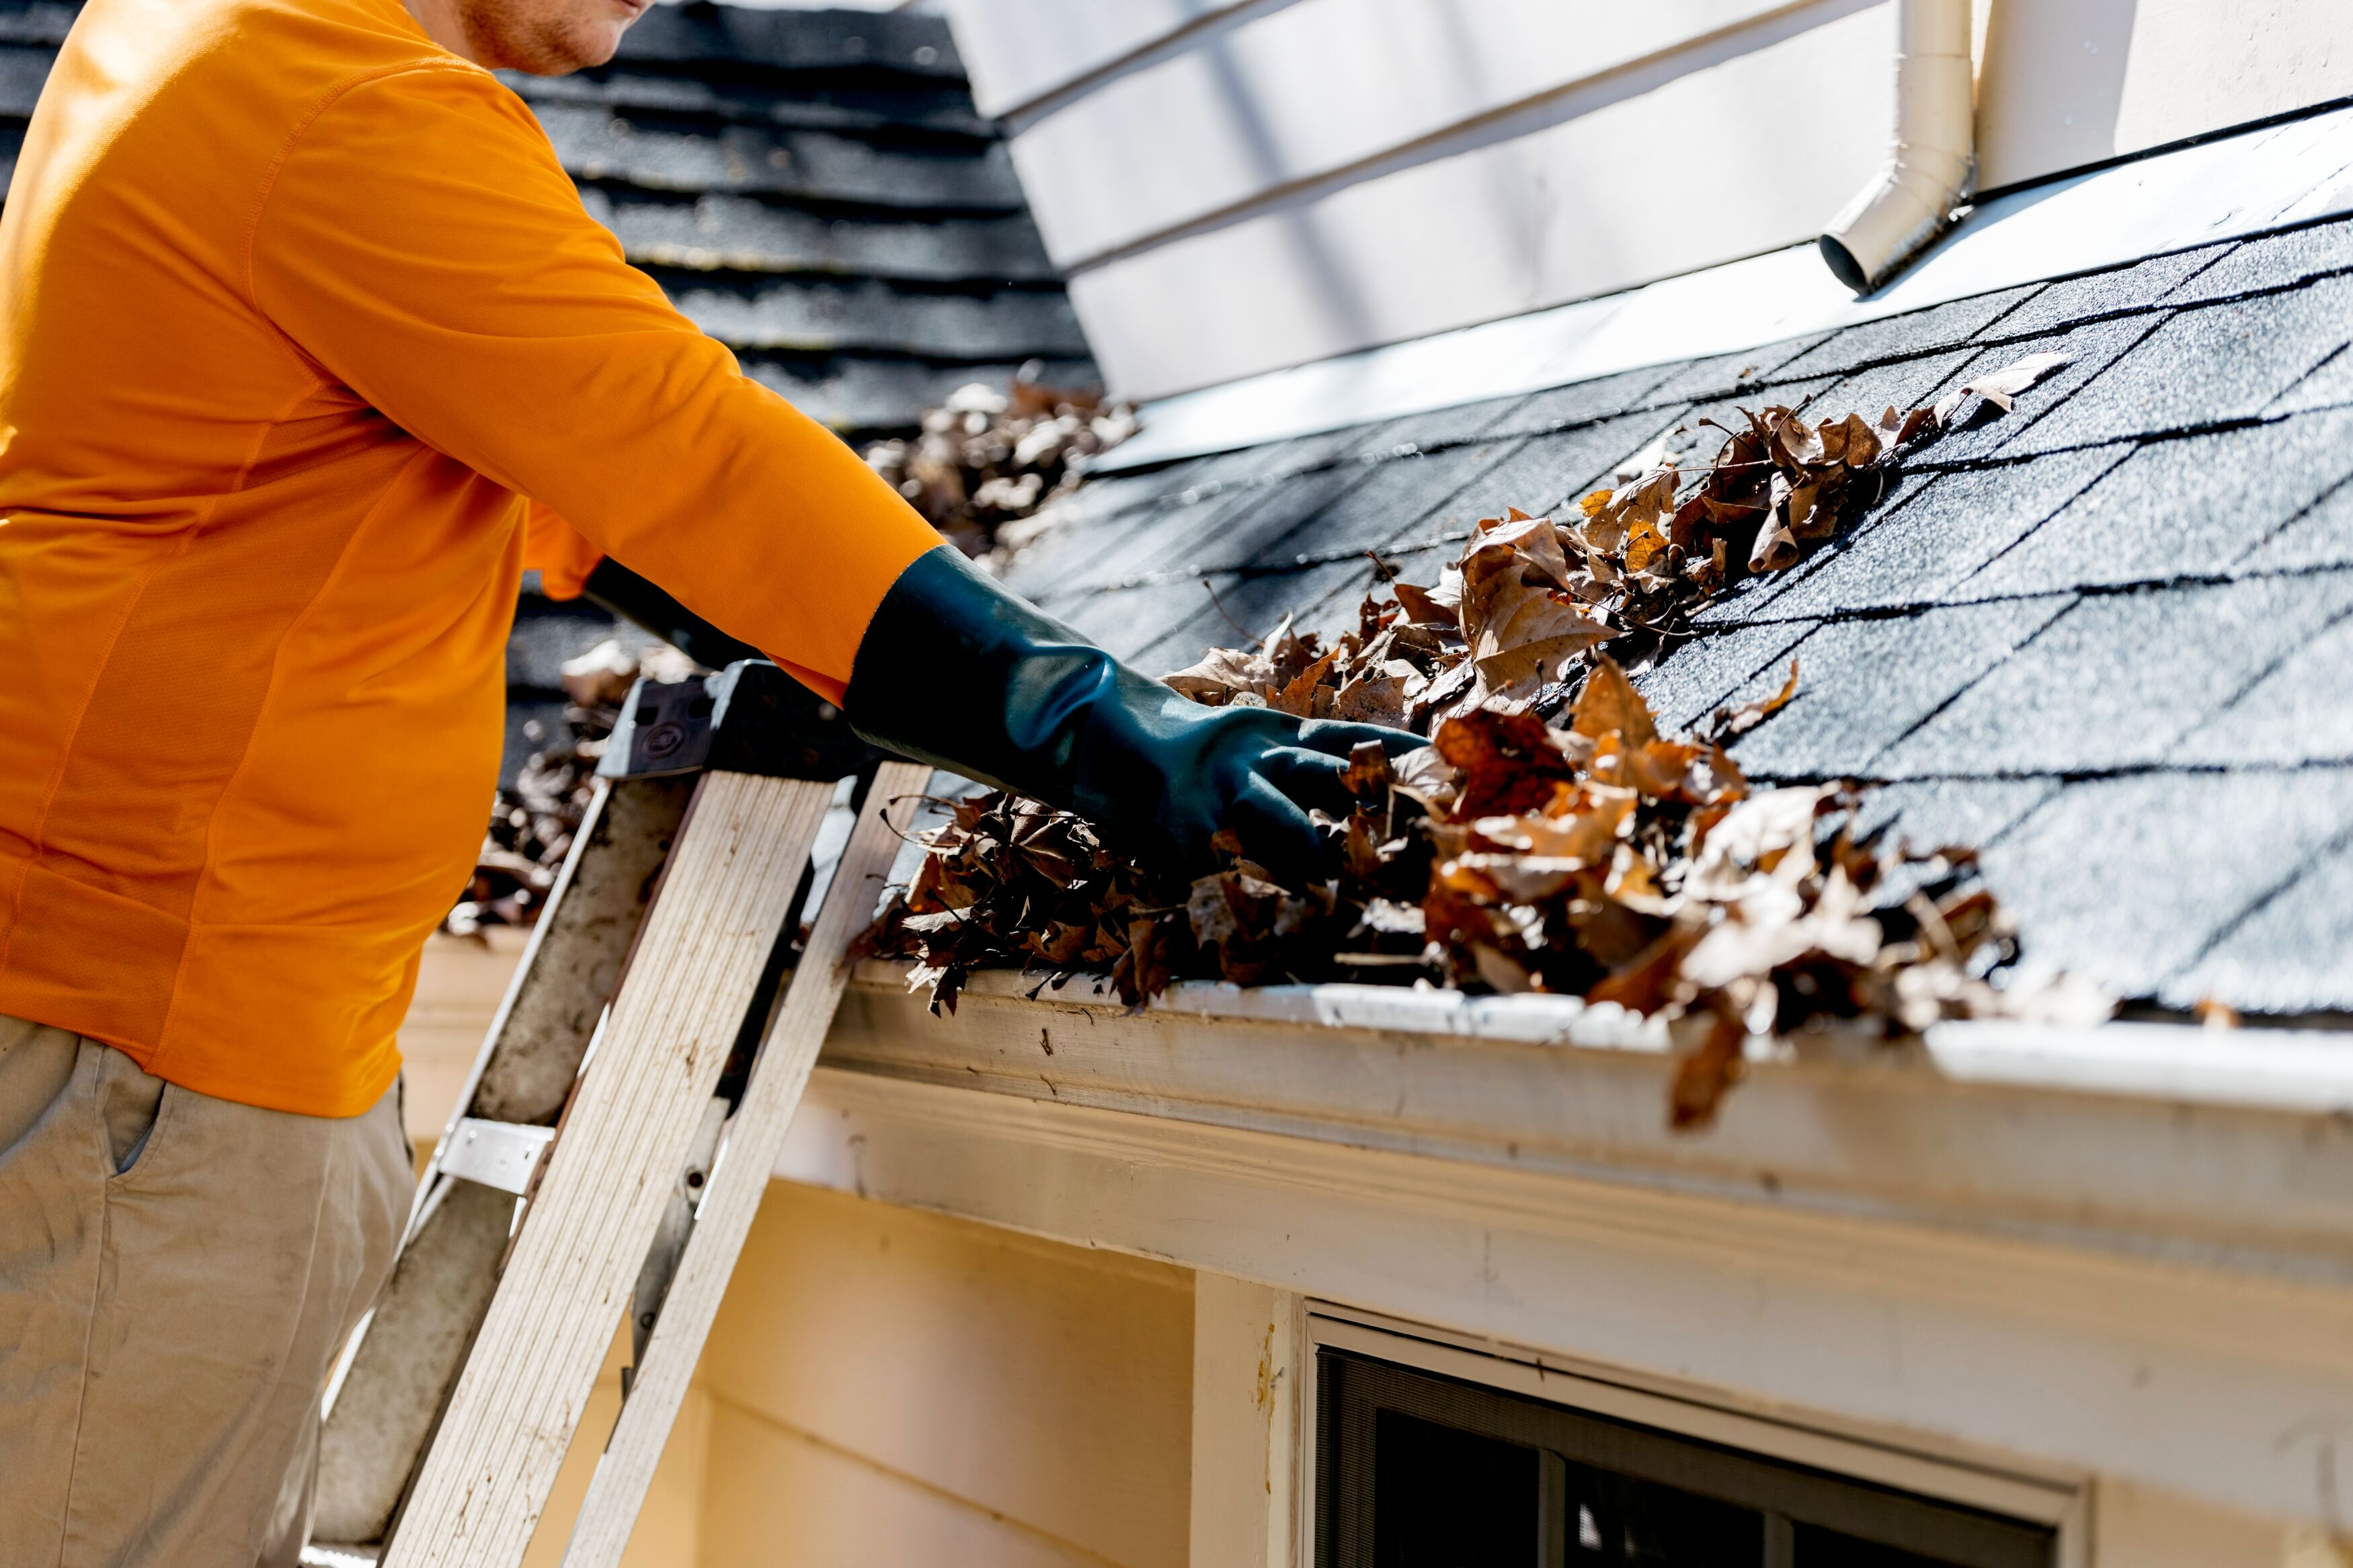 removing leaves from gutter